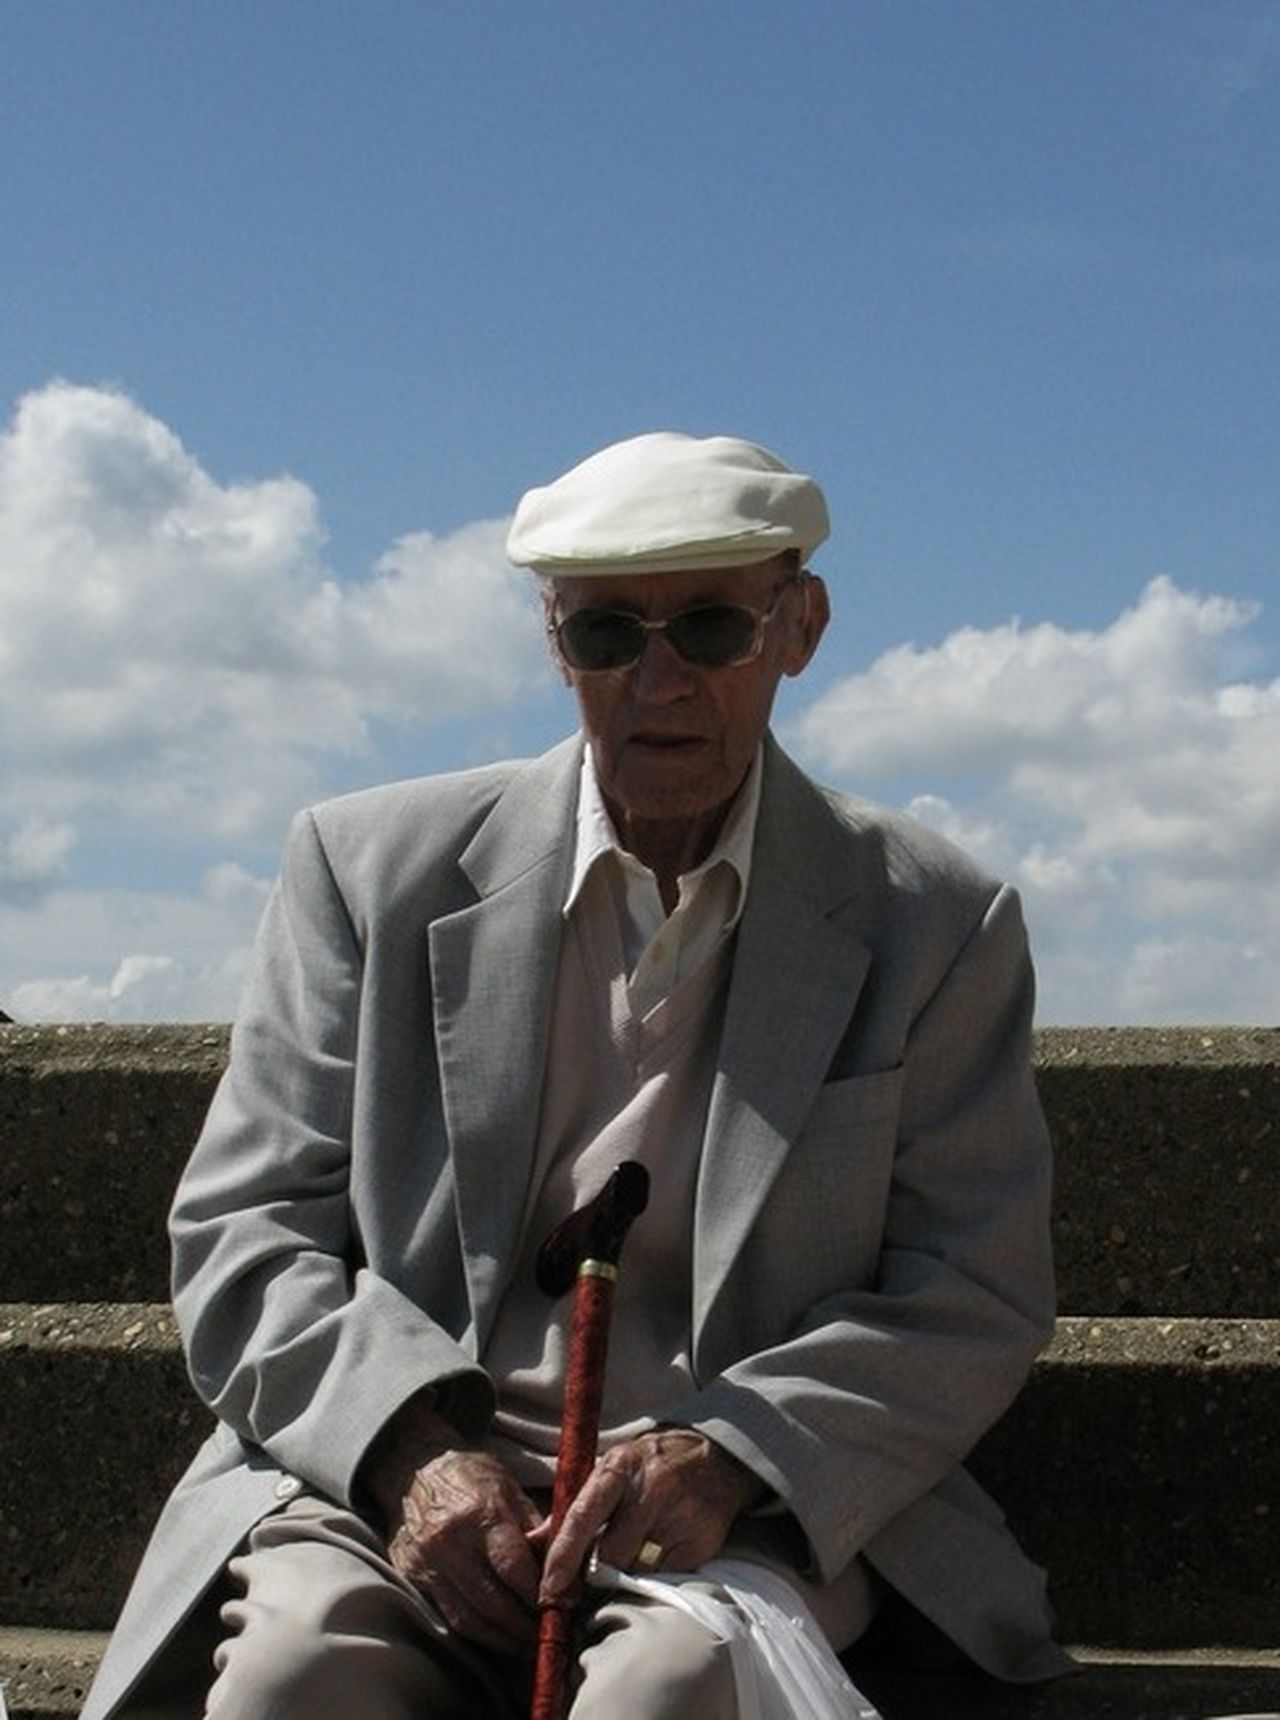 Alone Business Businessman Confidence  Friendship Front View Full Length Grandpa At The Beach In The Sun Holding Lifestyles Person Perspective Portrait Real People Standing The British At The Seaside On Holiday Kids Children Two 2 Girls On Jetty Watch Dingy Deep In Thought Seaside Jetty Water Wake Dingy Orange Sand Coastline Suffolk Horizon Documentary Reportage Photography Taking Shots Colour Color Dresses From My Point Of  The British On Holiday By The Seaside Waves White Crest Foam Sea Ocean Beach Sand Bathing Trunks Crocks Thinking Deep Thoughts Contemplation Man Male White Pale Lonly Looking Figure Sad Sadness Documentary Reportage Photography Photograph Photographer Col Three Quarter Length Togetherness Well-dressed Young Adult Young Men